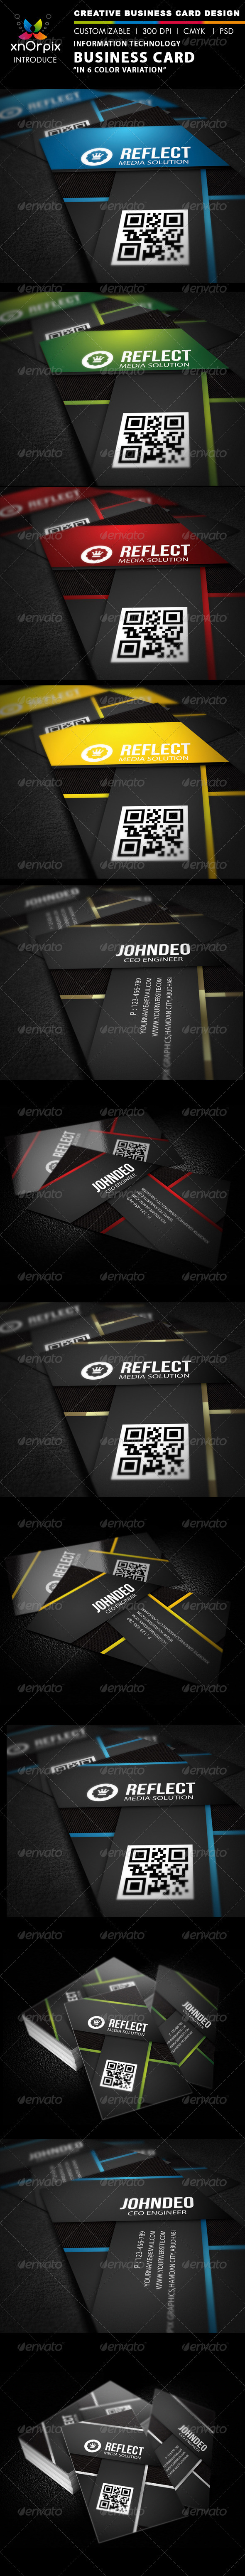 GraphicRiver Information Technology Business Card 2090280